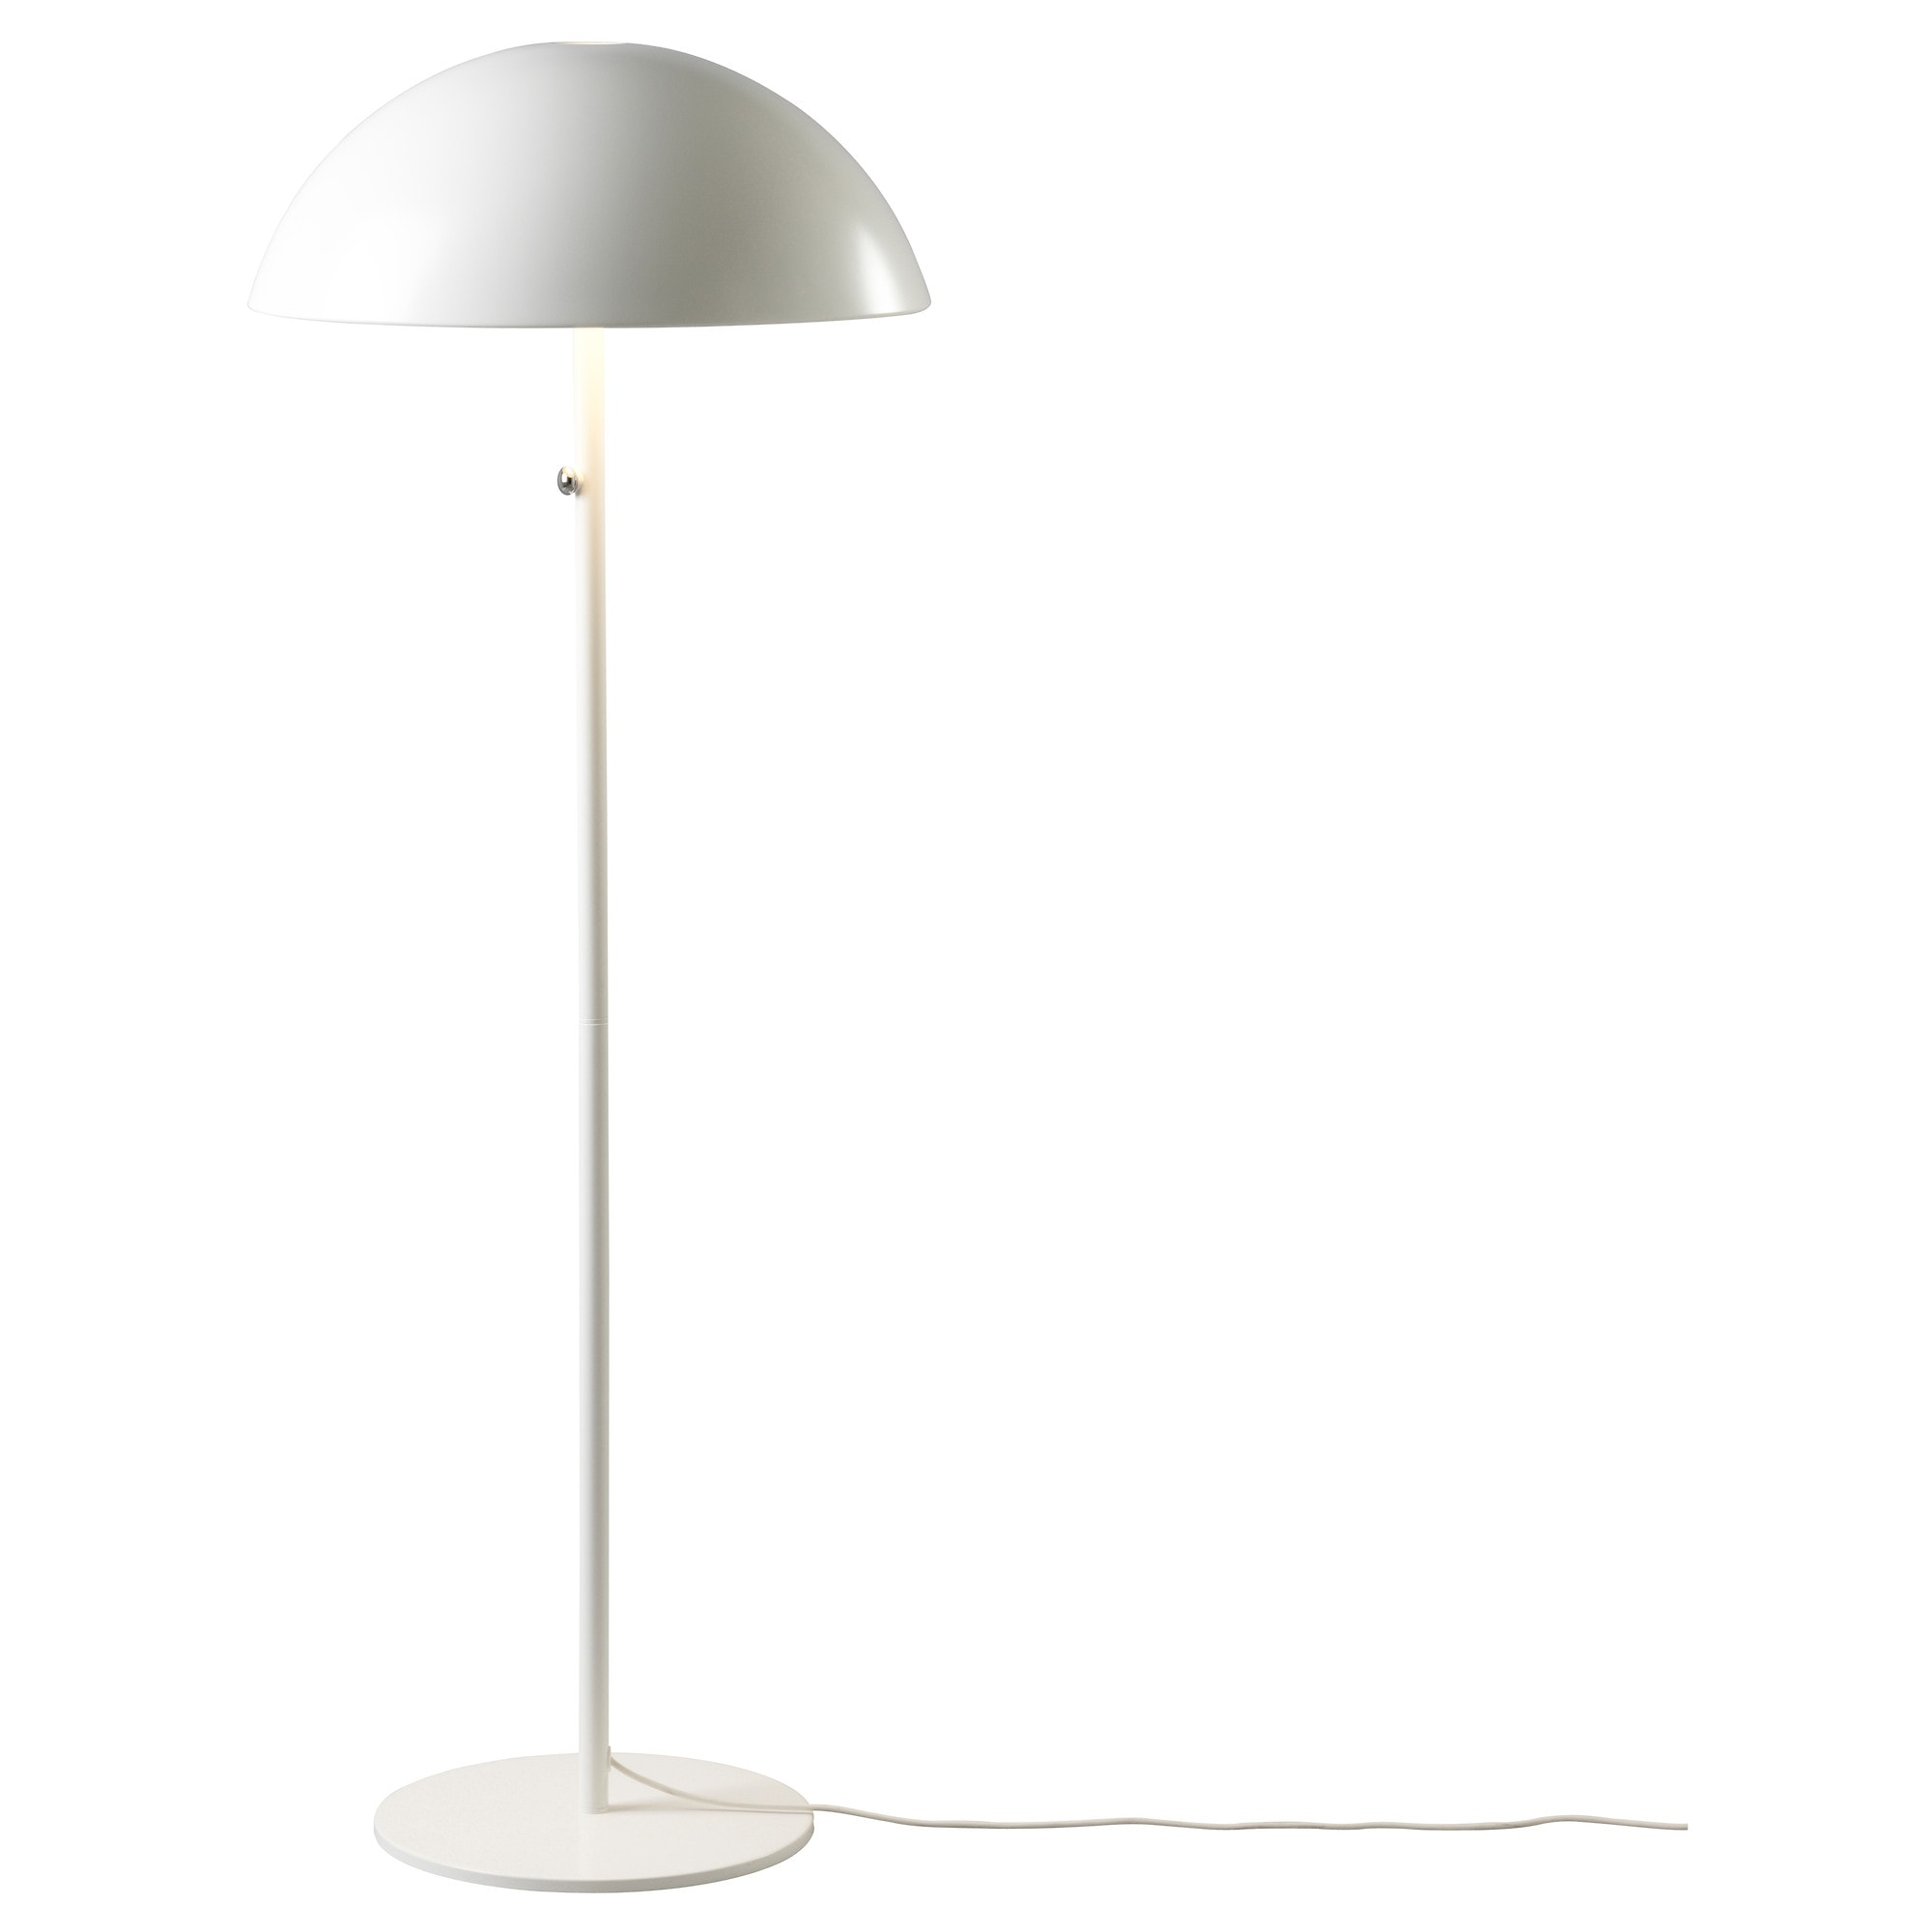 19 arc floor lamps ikea brasa floor lamp white